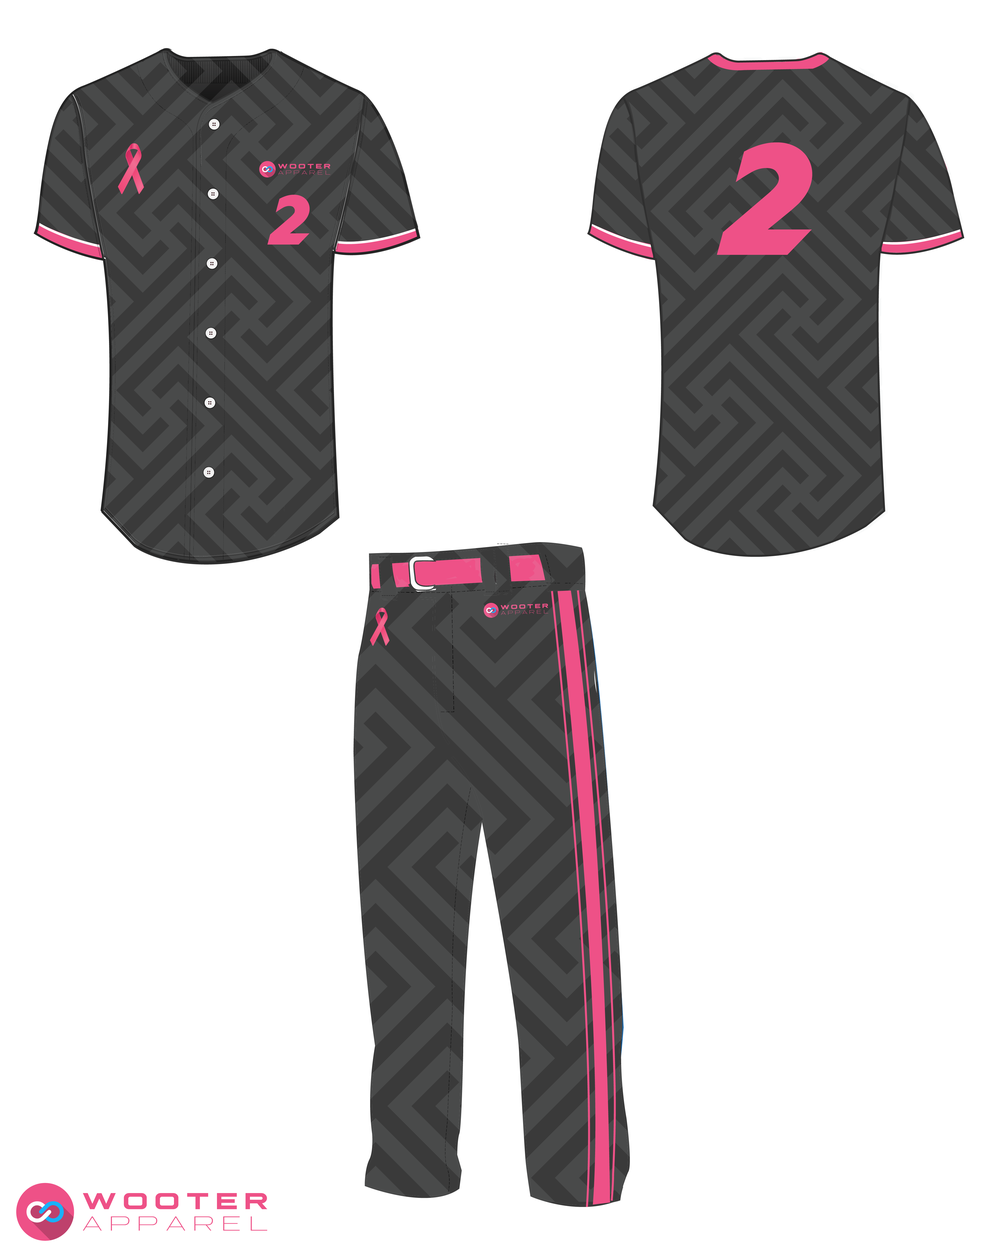 wooter breast cancer charity series baseball gray edition-01.png